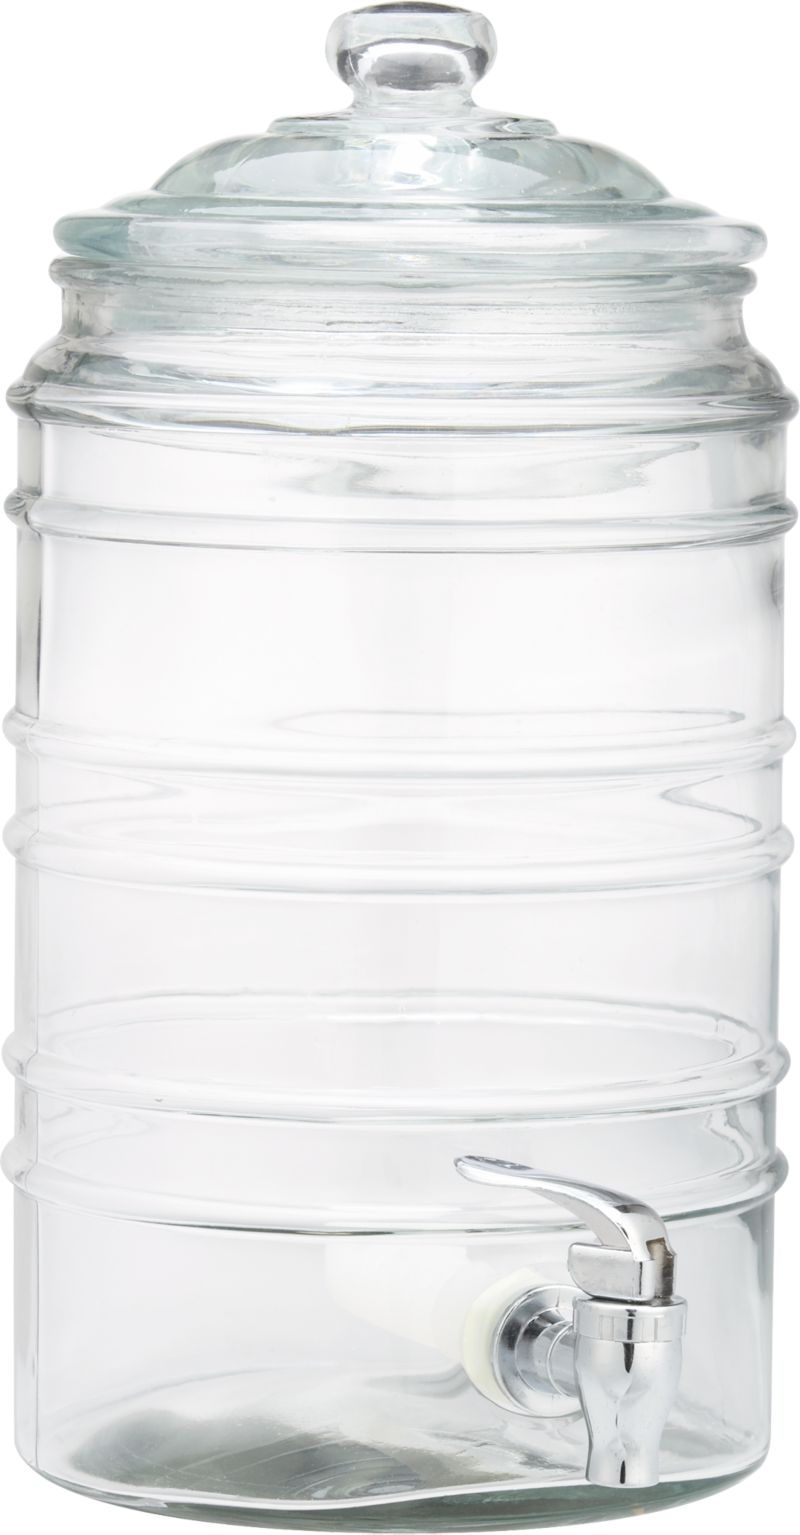 Cold Beverage Jar